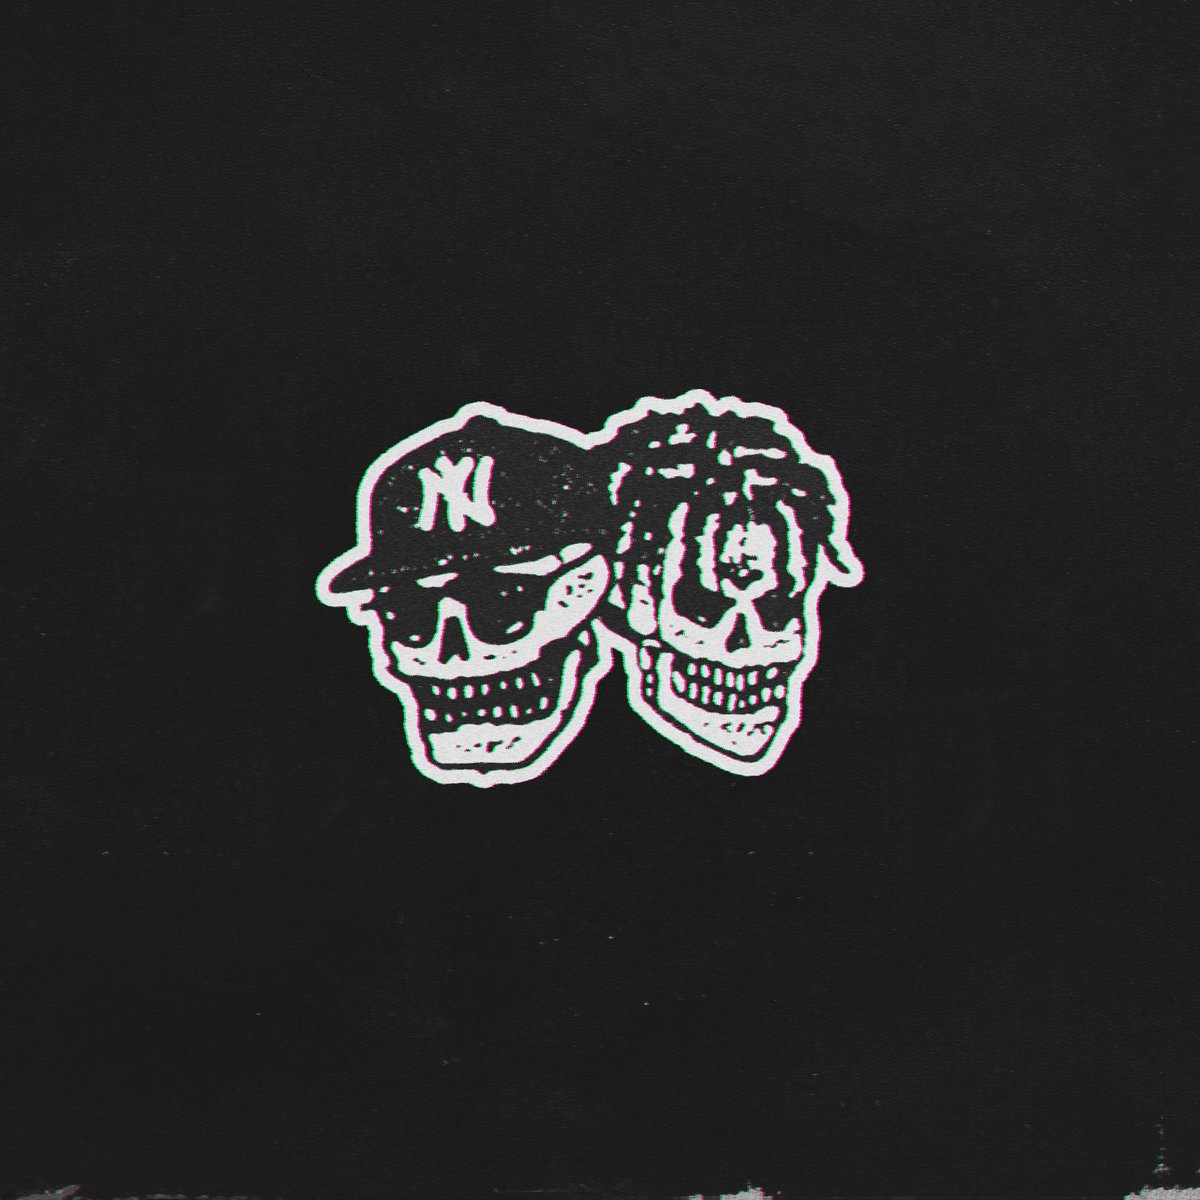 y'all are in for a treat tonight. 👀@AndyMineo